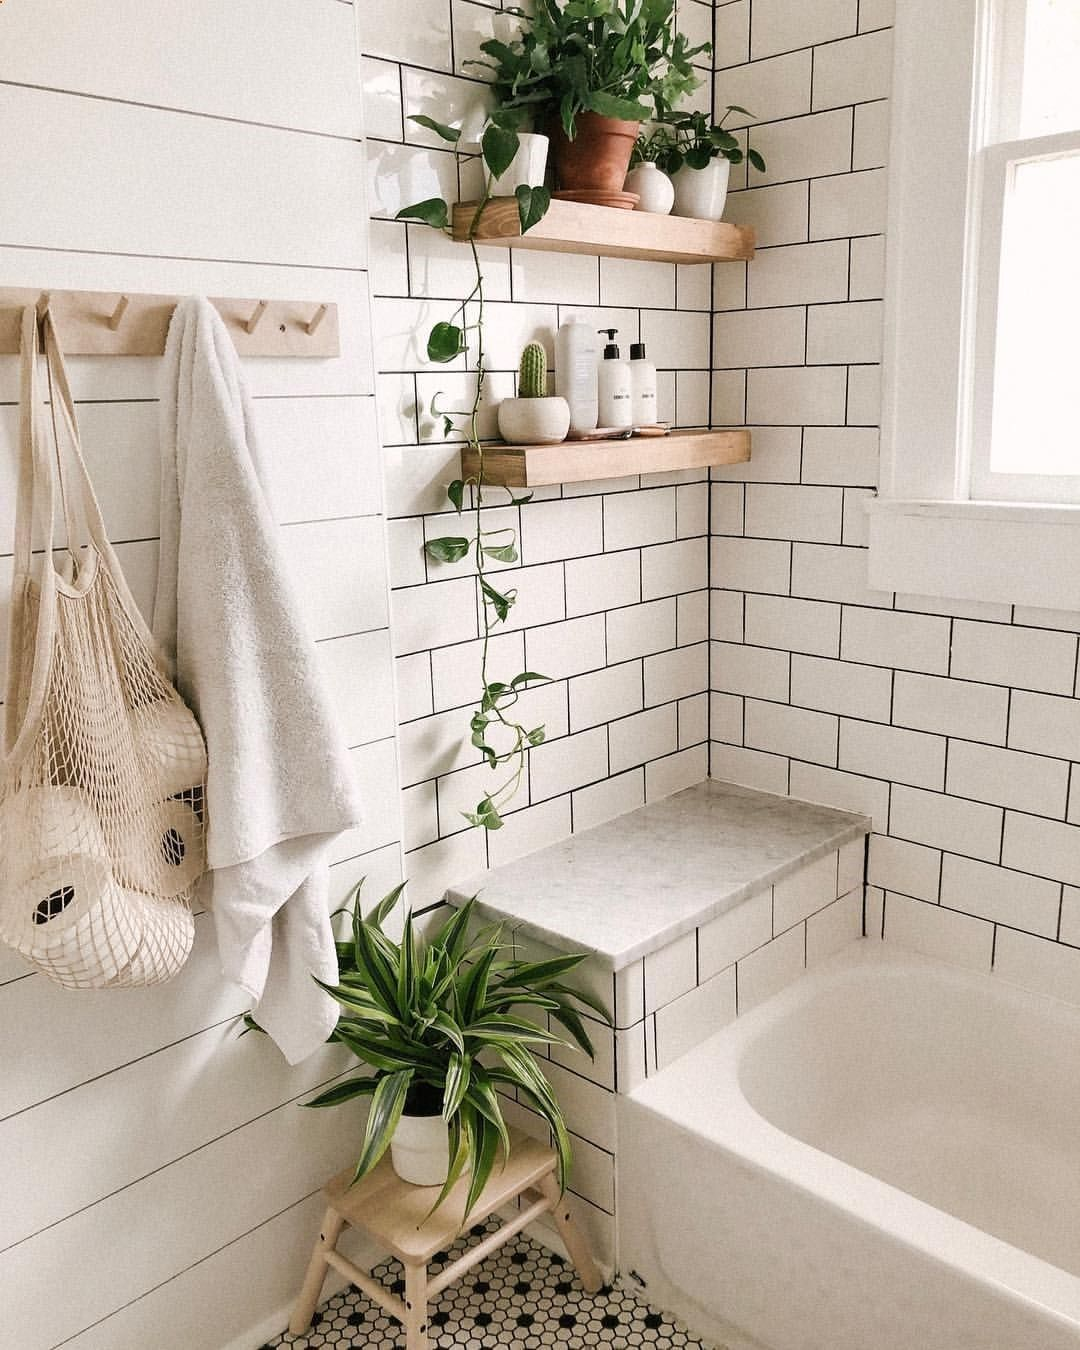 Pinterest Tessmeyer5 Homedecor Decor Homedecorideas Interiordecor Modern Small Bathrooms Small Bathroom Decor Modern Vintage Bathroom